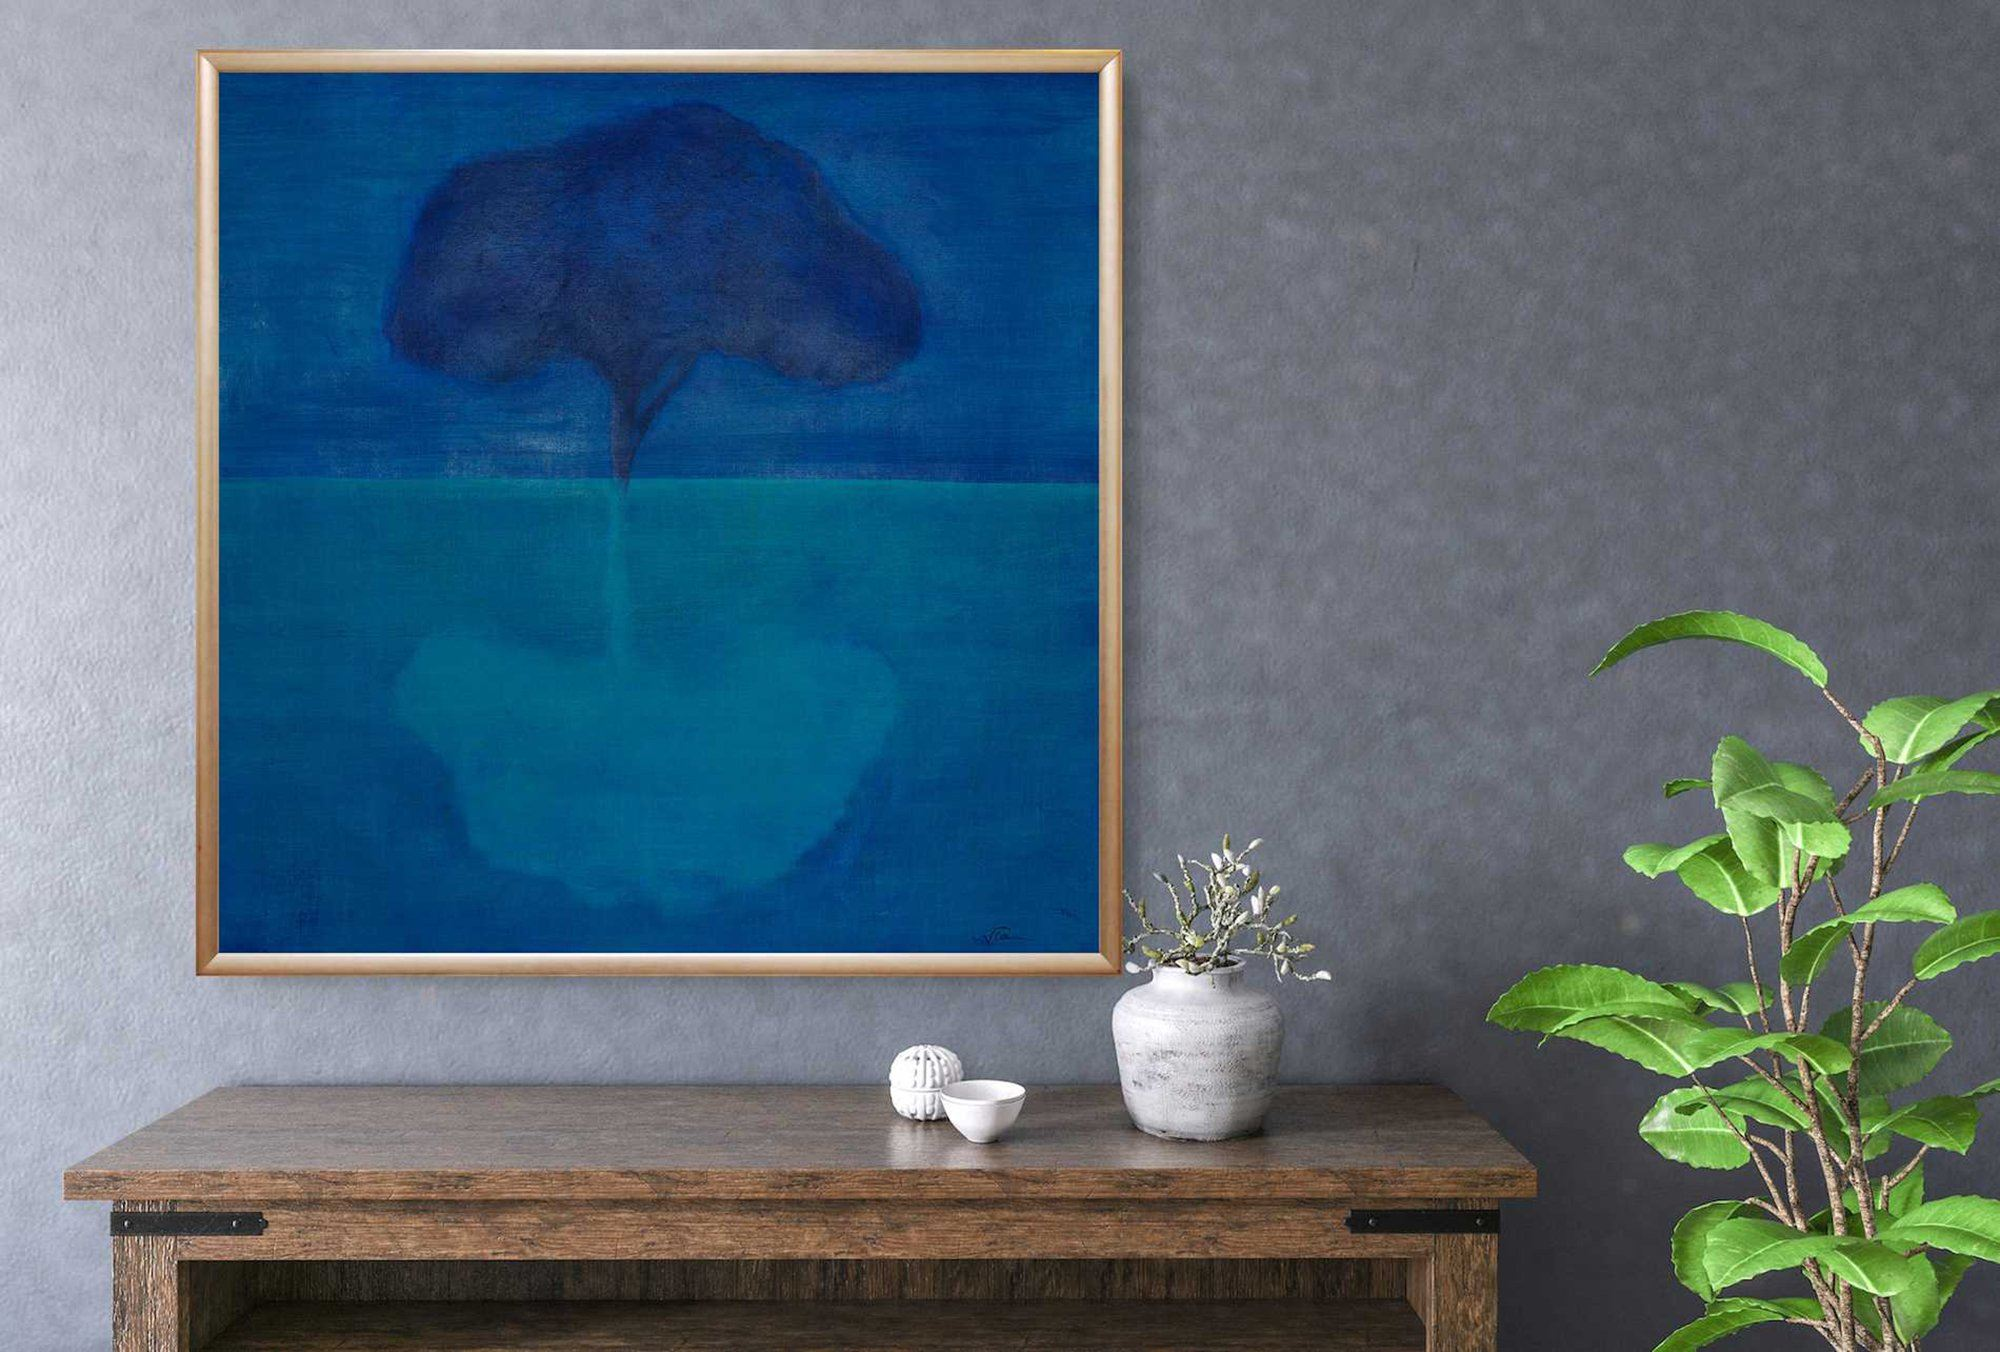 Life of a Tree: Reflection,oil on canvas, 37x37, blue, aqua, tree, reflection, water, sky, abstract, oil on canvas